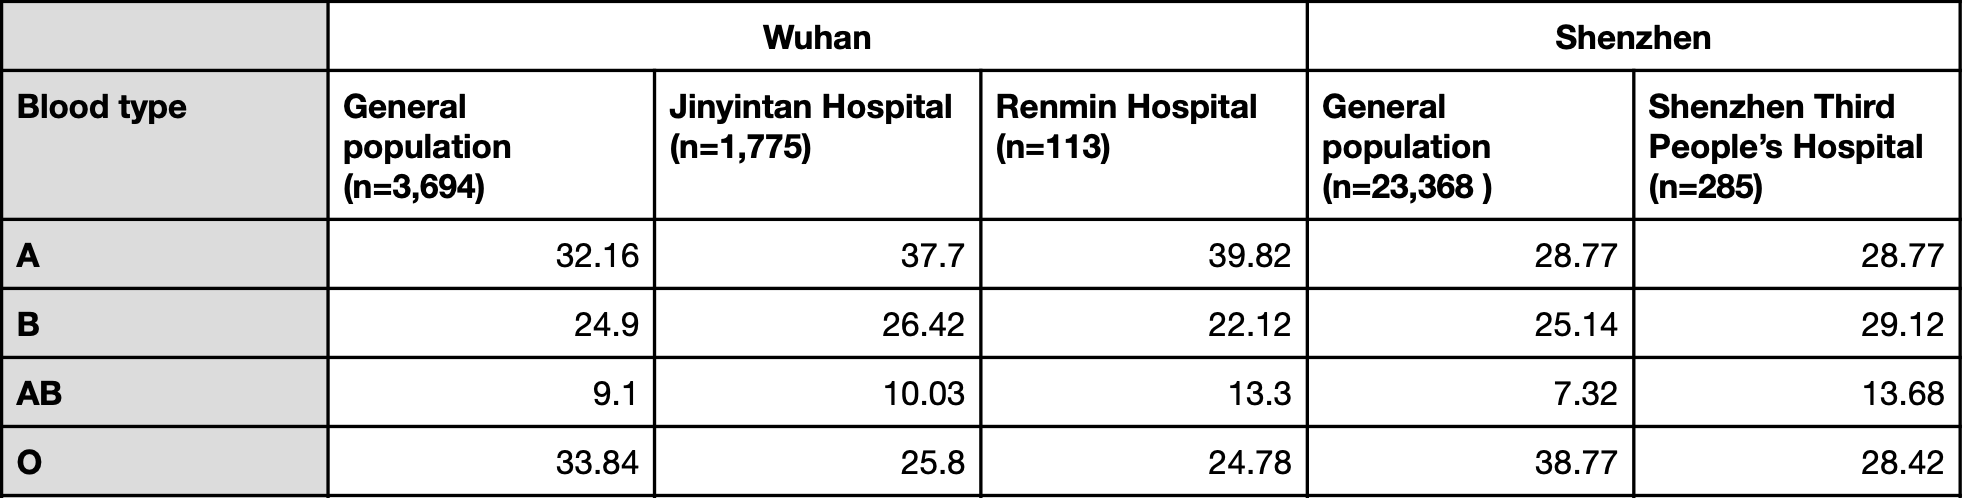 Blood type prevalence in Zhao et al.